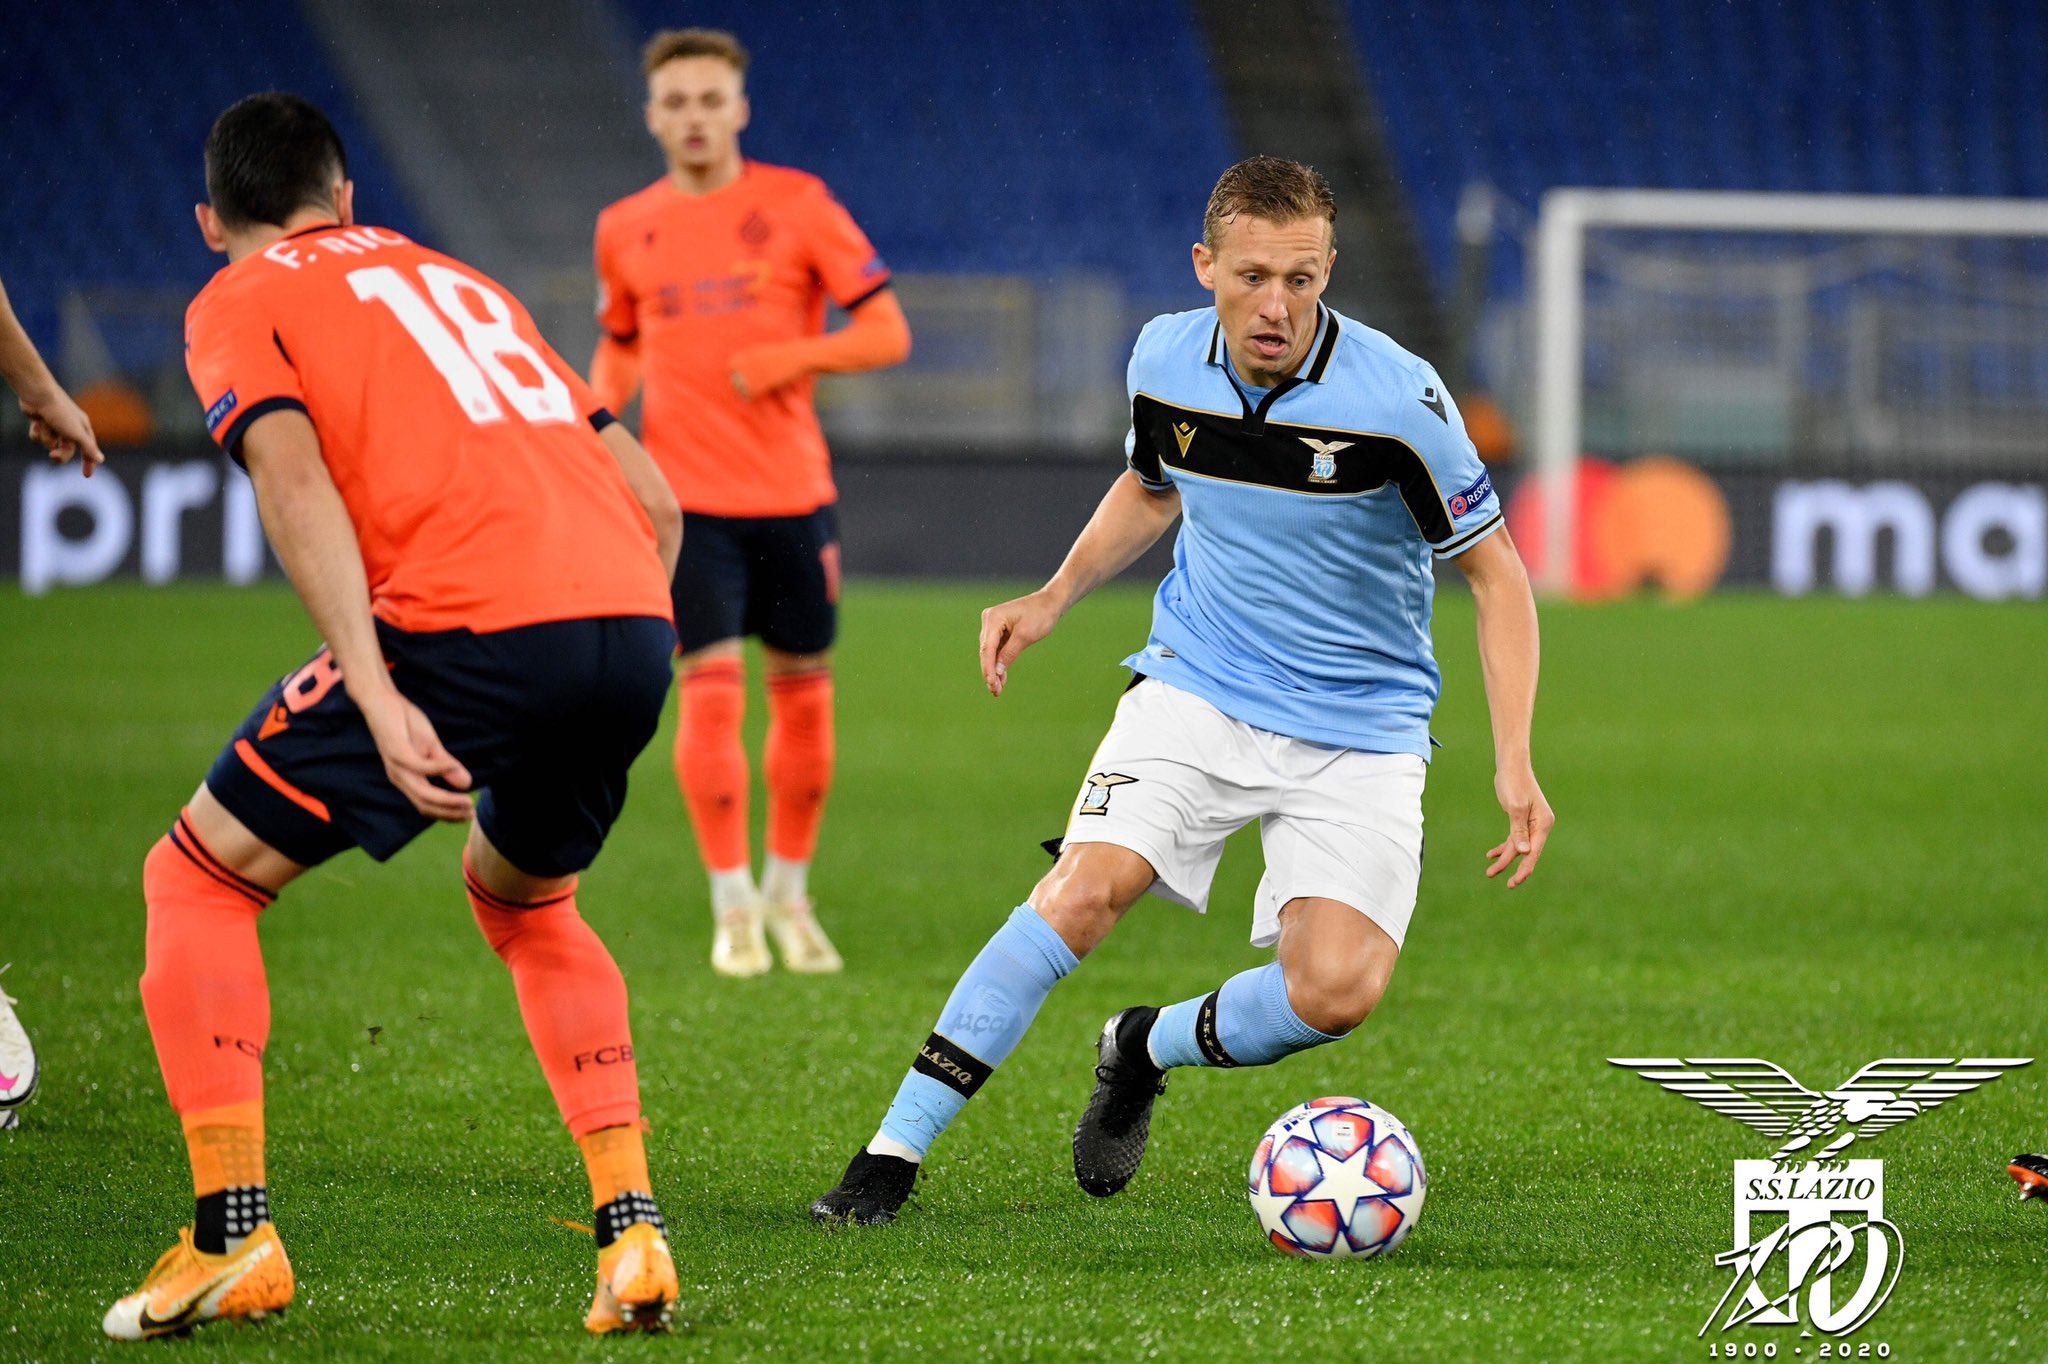 UCL: Dennis Benched, Okereke In Action As Club Brugge Hold Lazio Away, Drop To Europa League